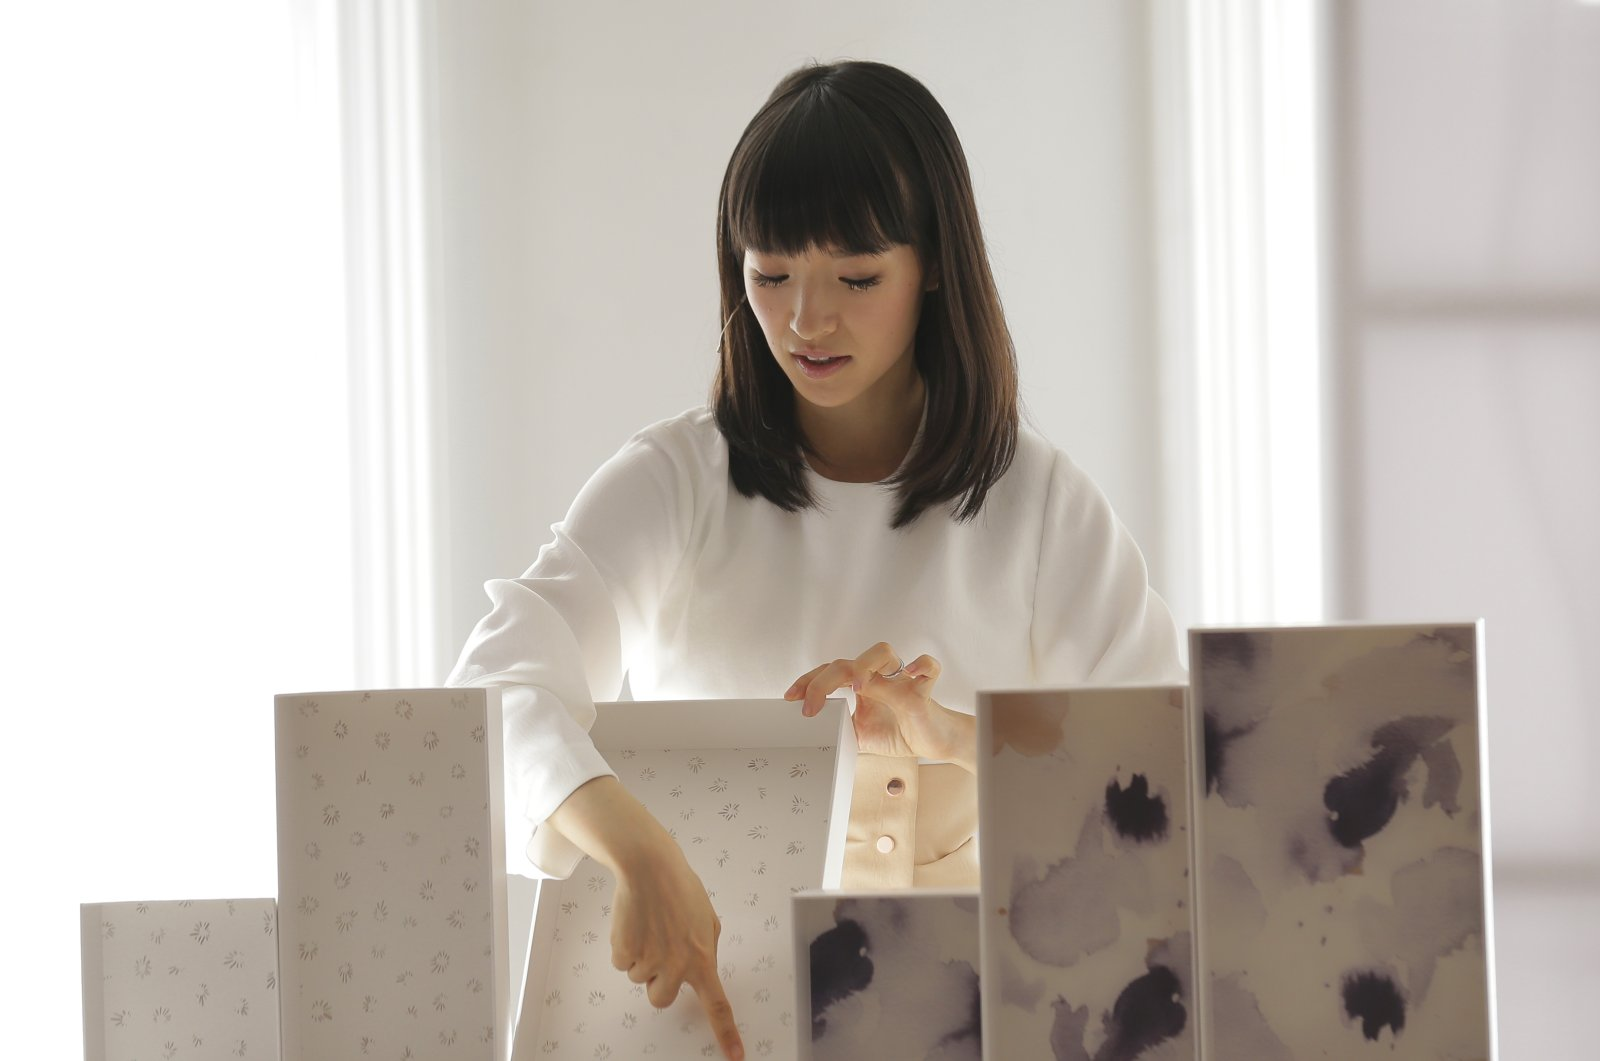 In this July 11, 2018 photo, Japanese organizational expert Marie Kondo displays her line of storage boxes during a media event in New York. (AP Photo)